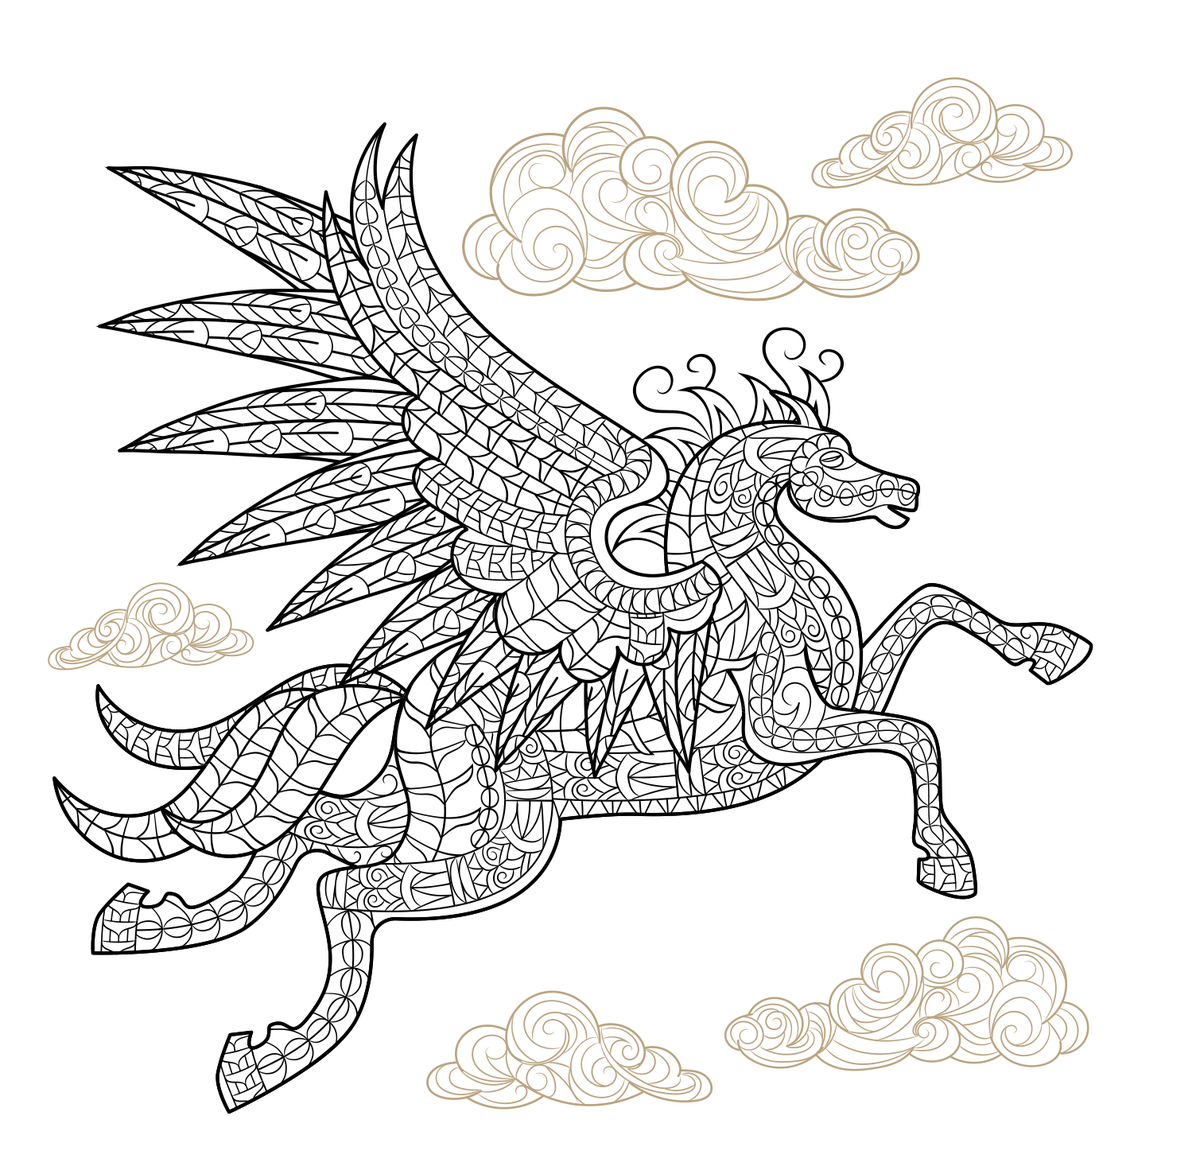 to print the pegasus coloring page zoom in on the image to the left and then right click to download and save then open up the page and print